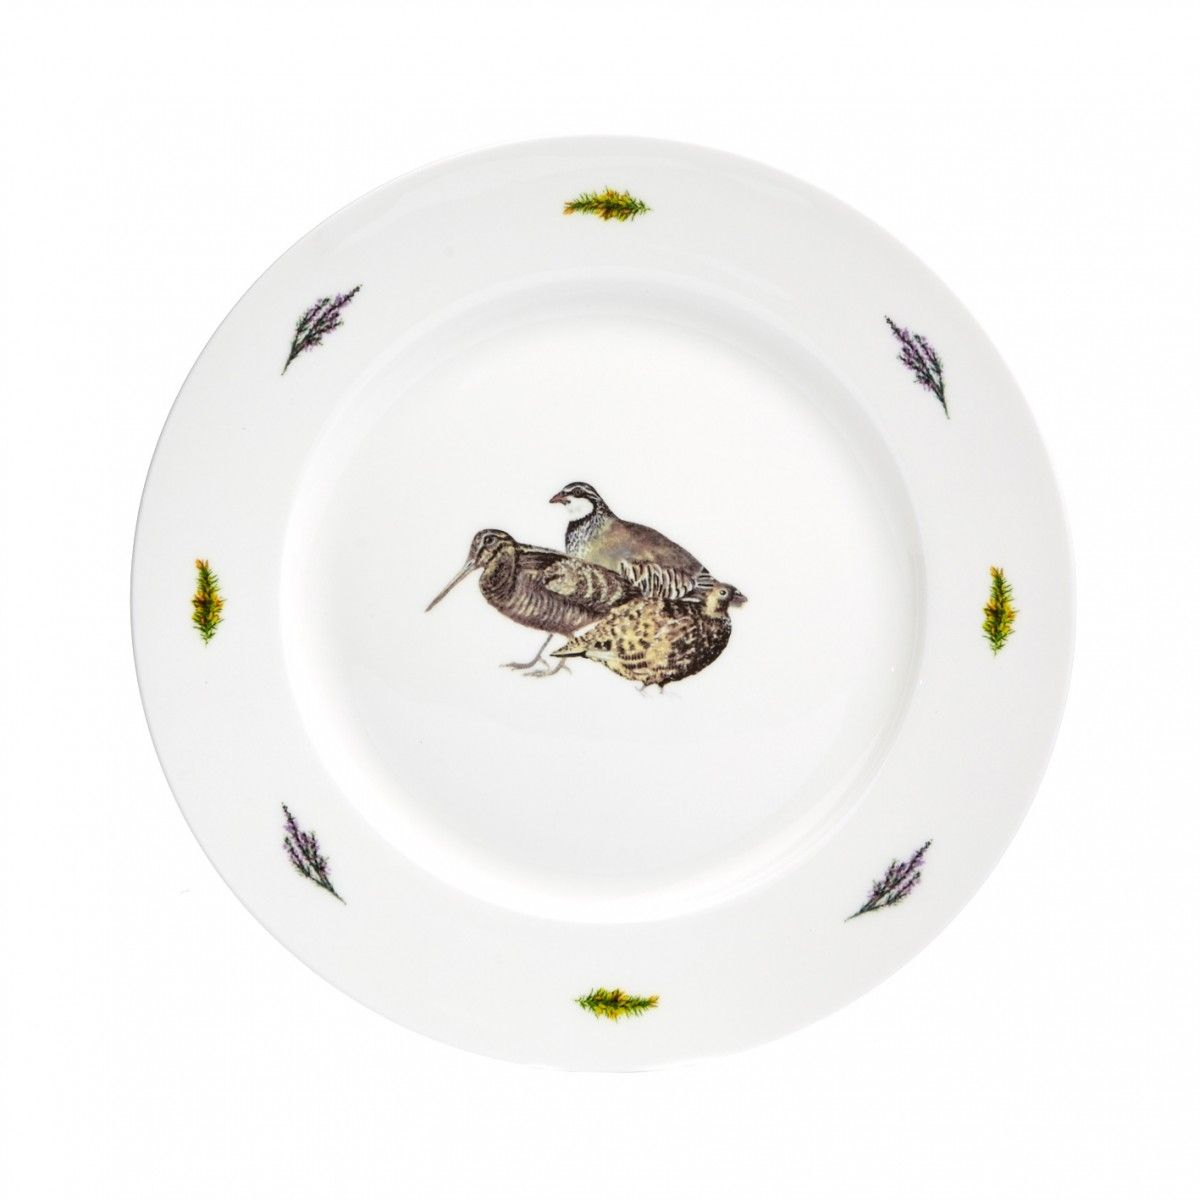 At Home in the Country - 10 Inch Game Birds Dinner Plate  sc 1 th 225 & Game Birds Fine Bone China 10 Inch Dinner Plate | At Home in the Country